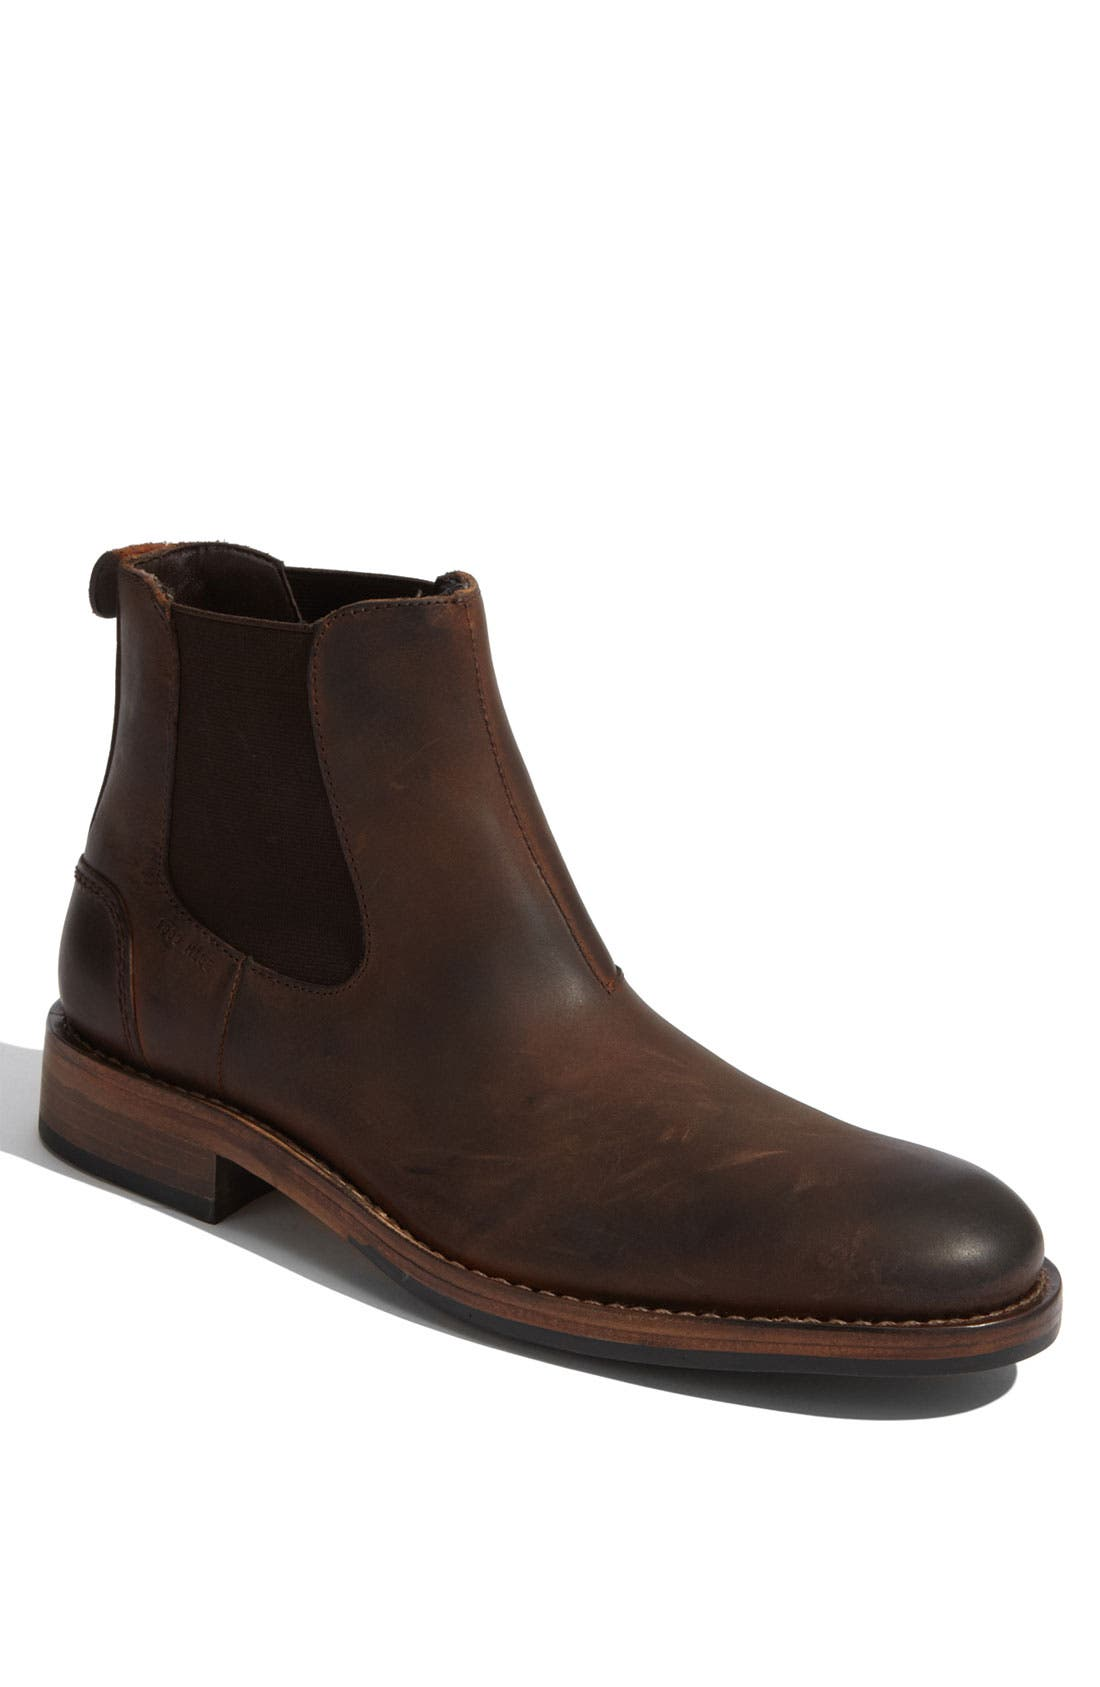 Wolverine Montague Chelsea Boot